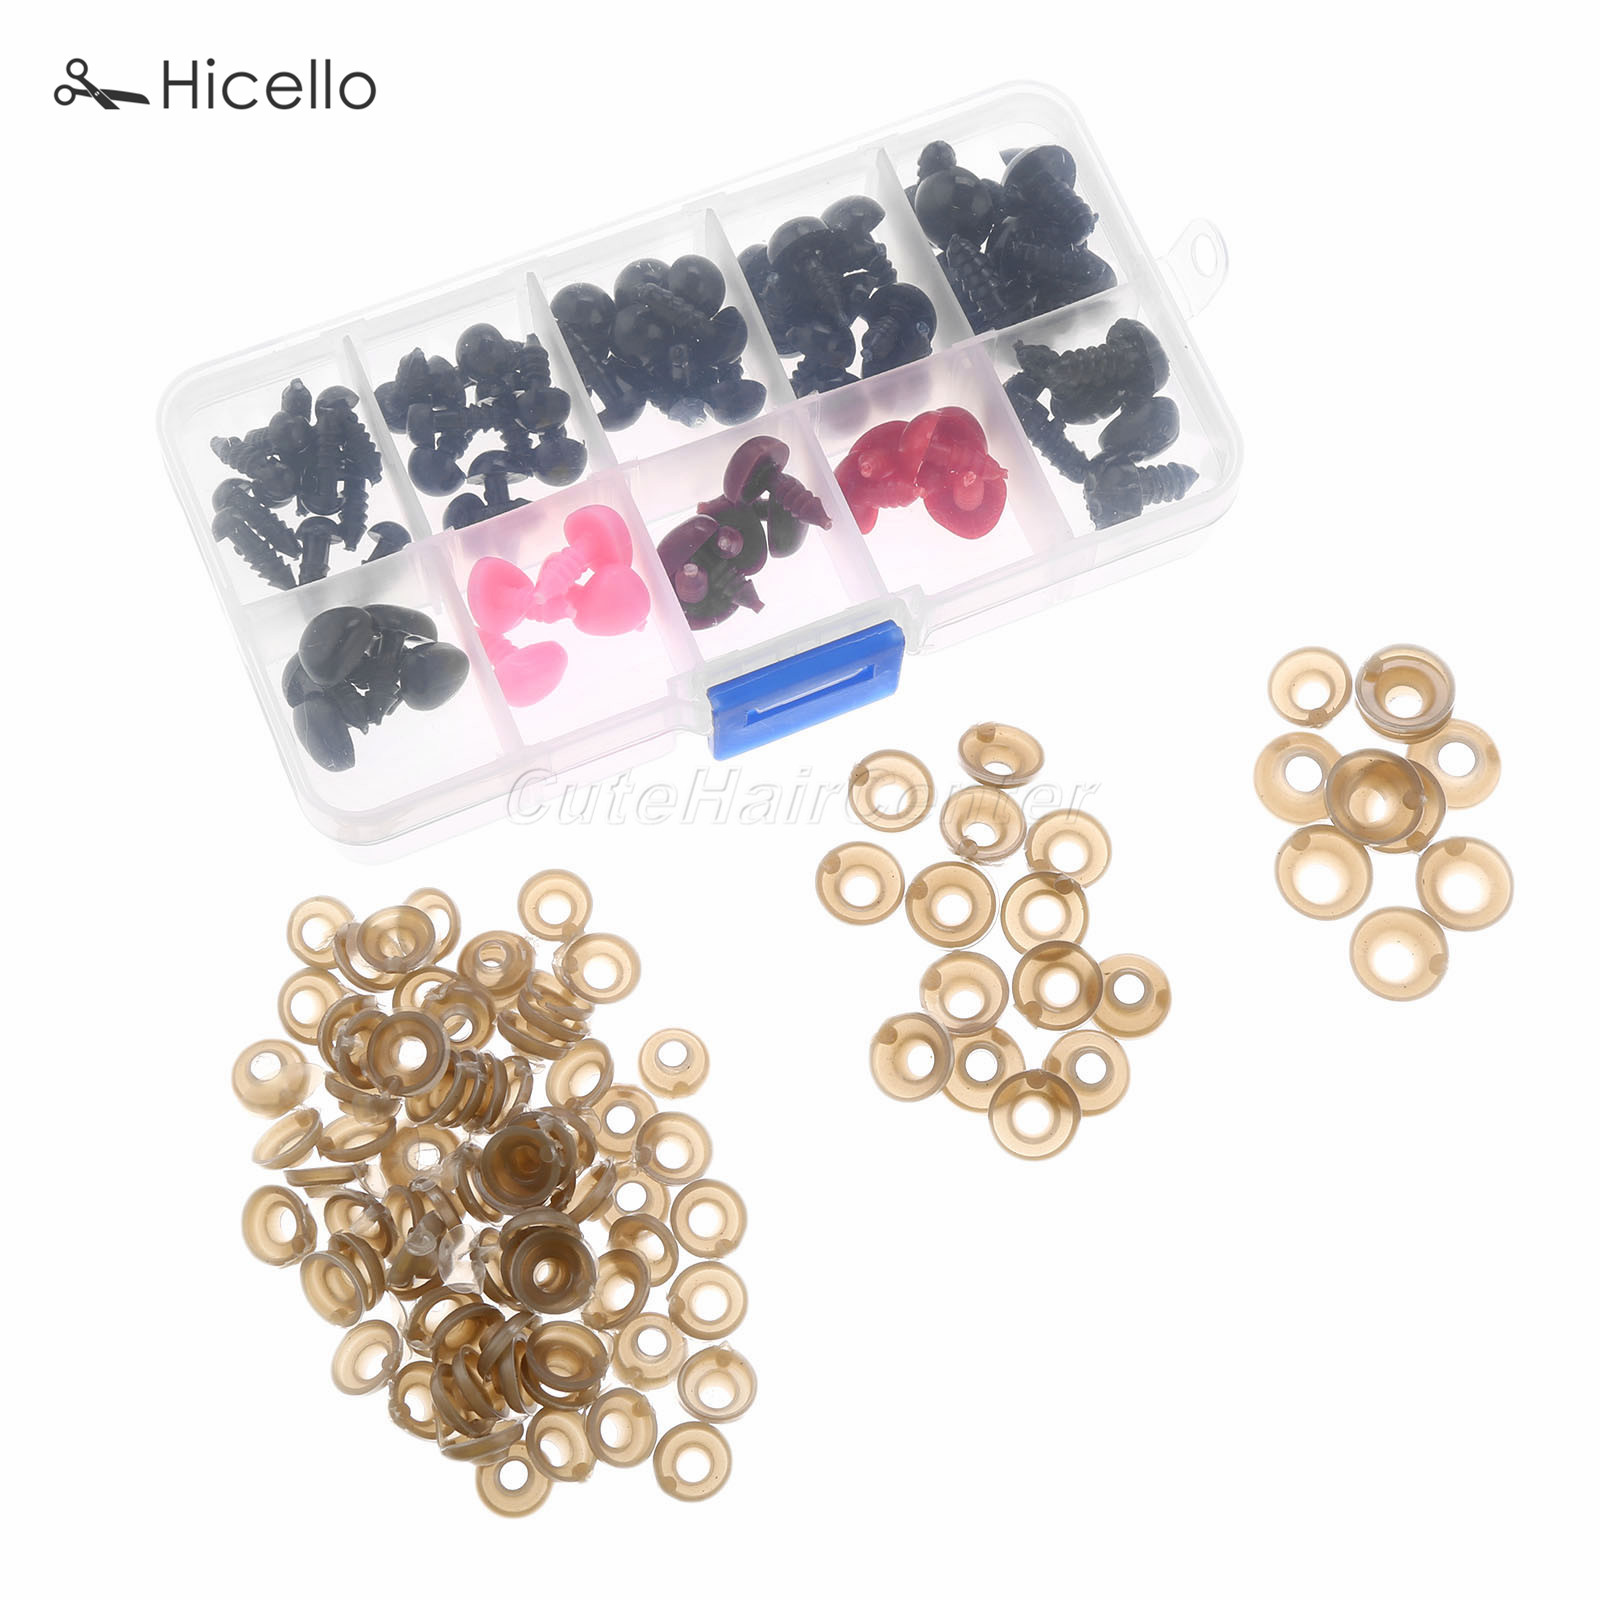 100PCS/box Eyes+Nose 6/8/9/10/12 MM plastic Safety eyes tri-angle nose thread end washer buckle DIY doll toy Sewing sets Hicello